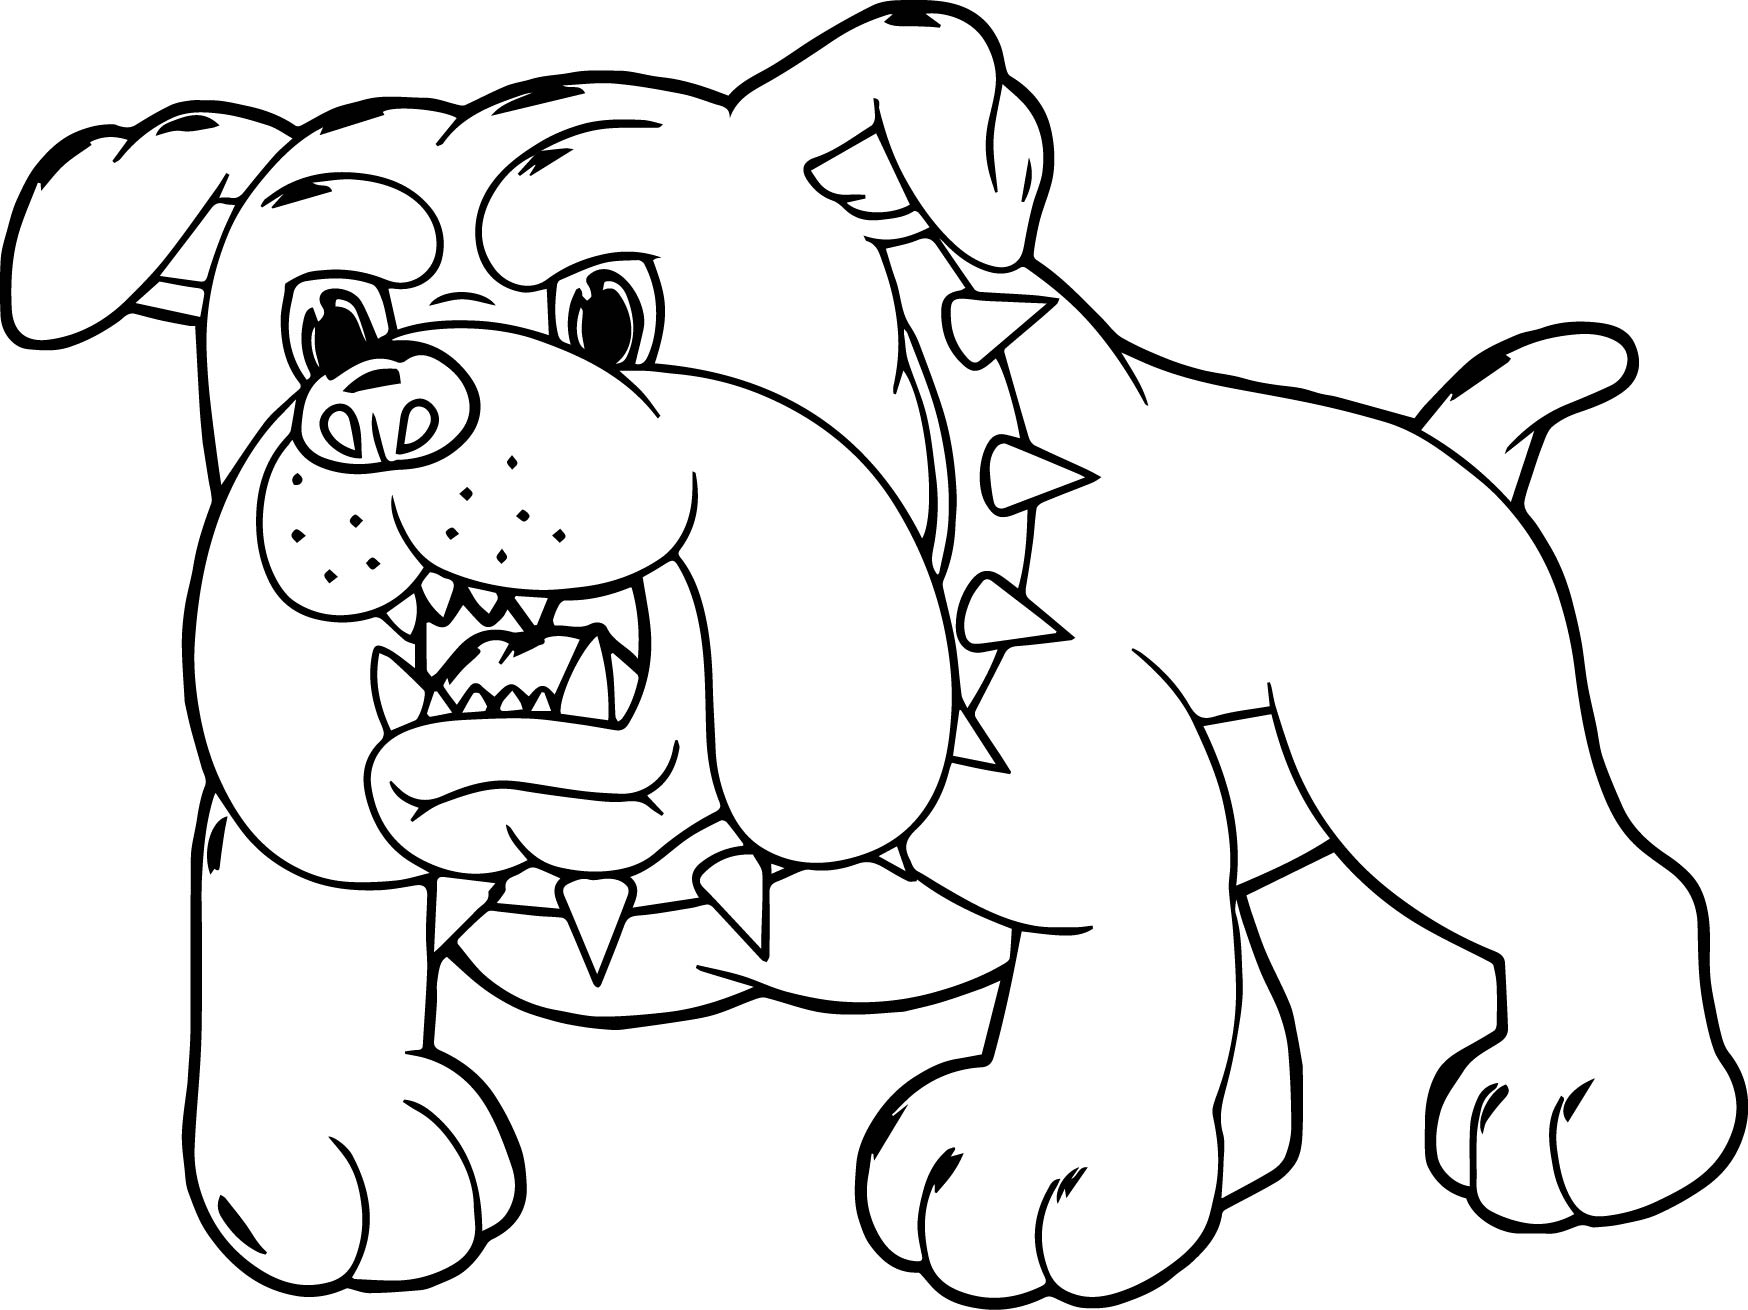 coloring cartoon dog pug coloring pages best coloring pages for kids coloring cartoon dog